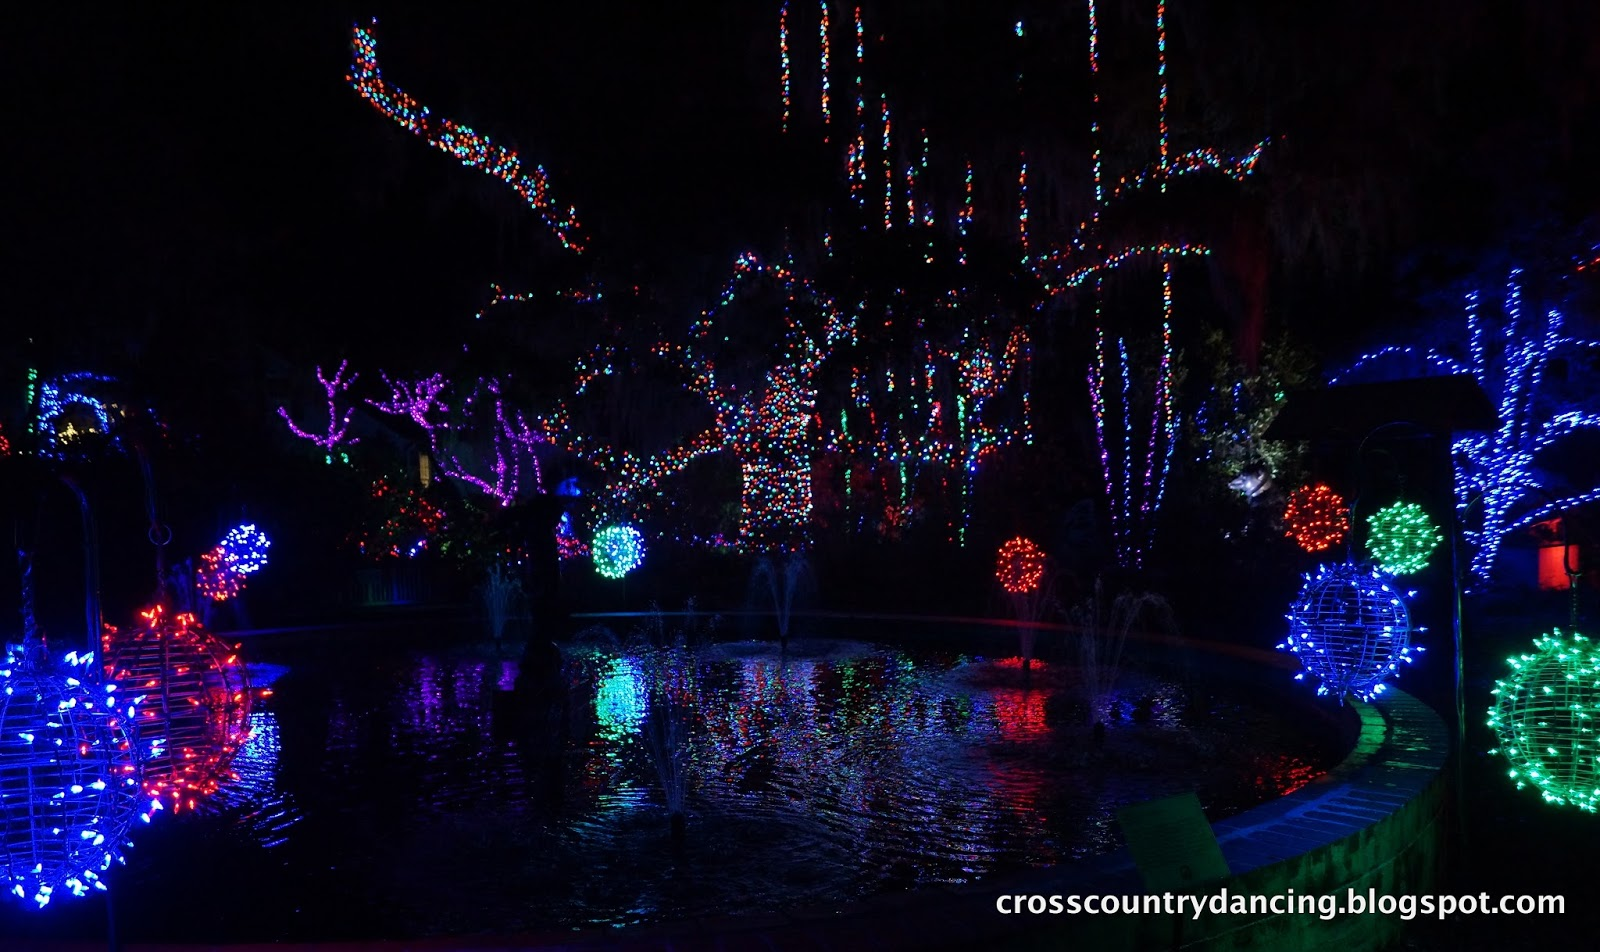 Dancing 39 Cross The Country Nights Of A Thousand Candles At Brookgreen Gardens Sc